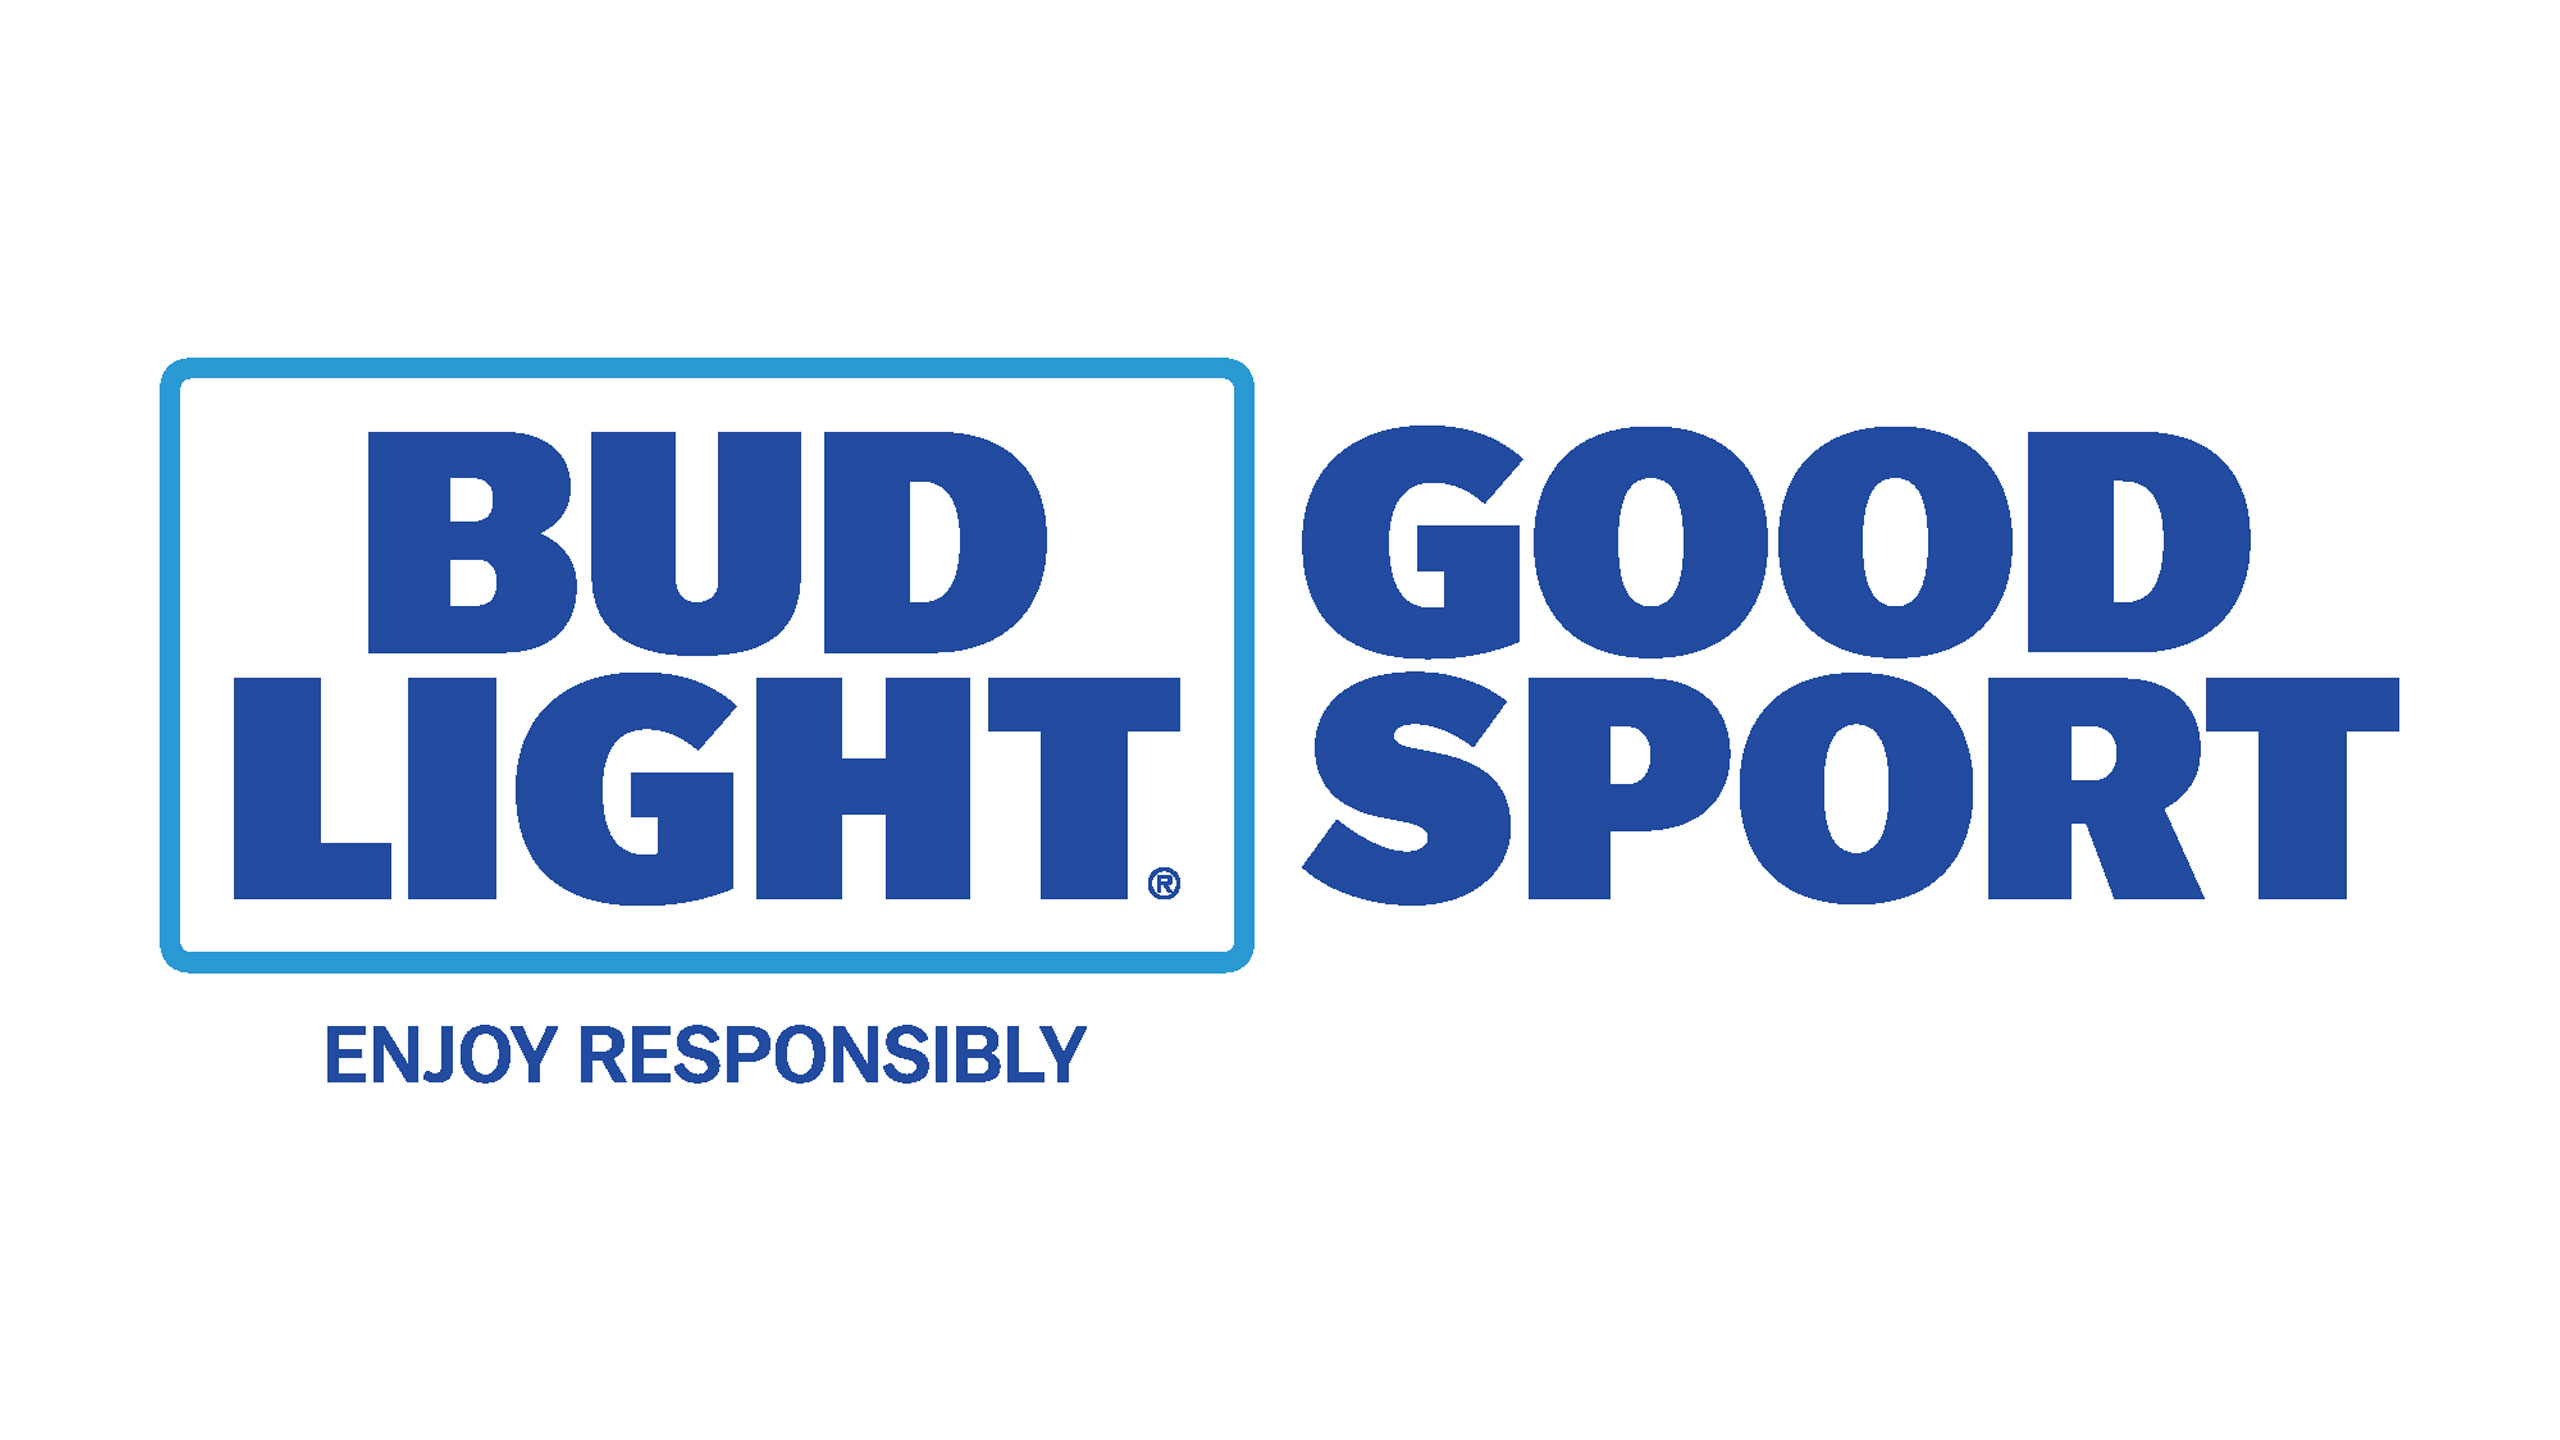 Bud Light Good Sport